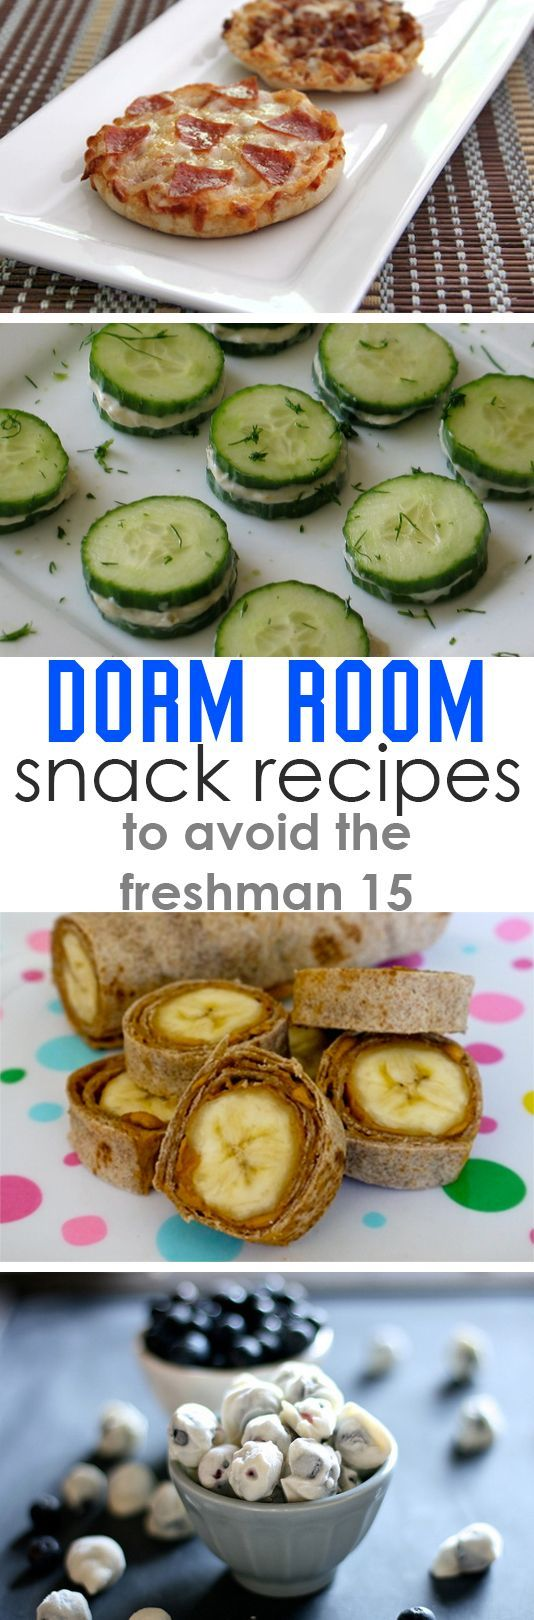 Healthy Dorm Room Snack Recipes - great for anyone on the go!